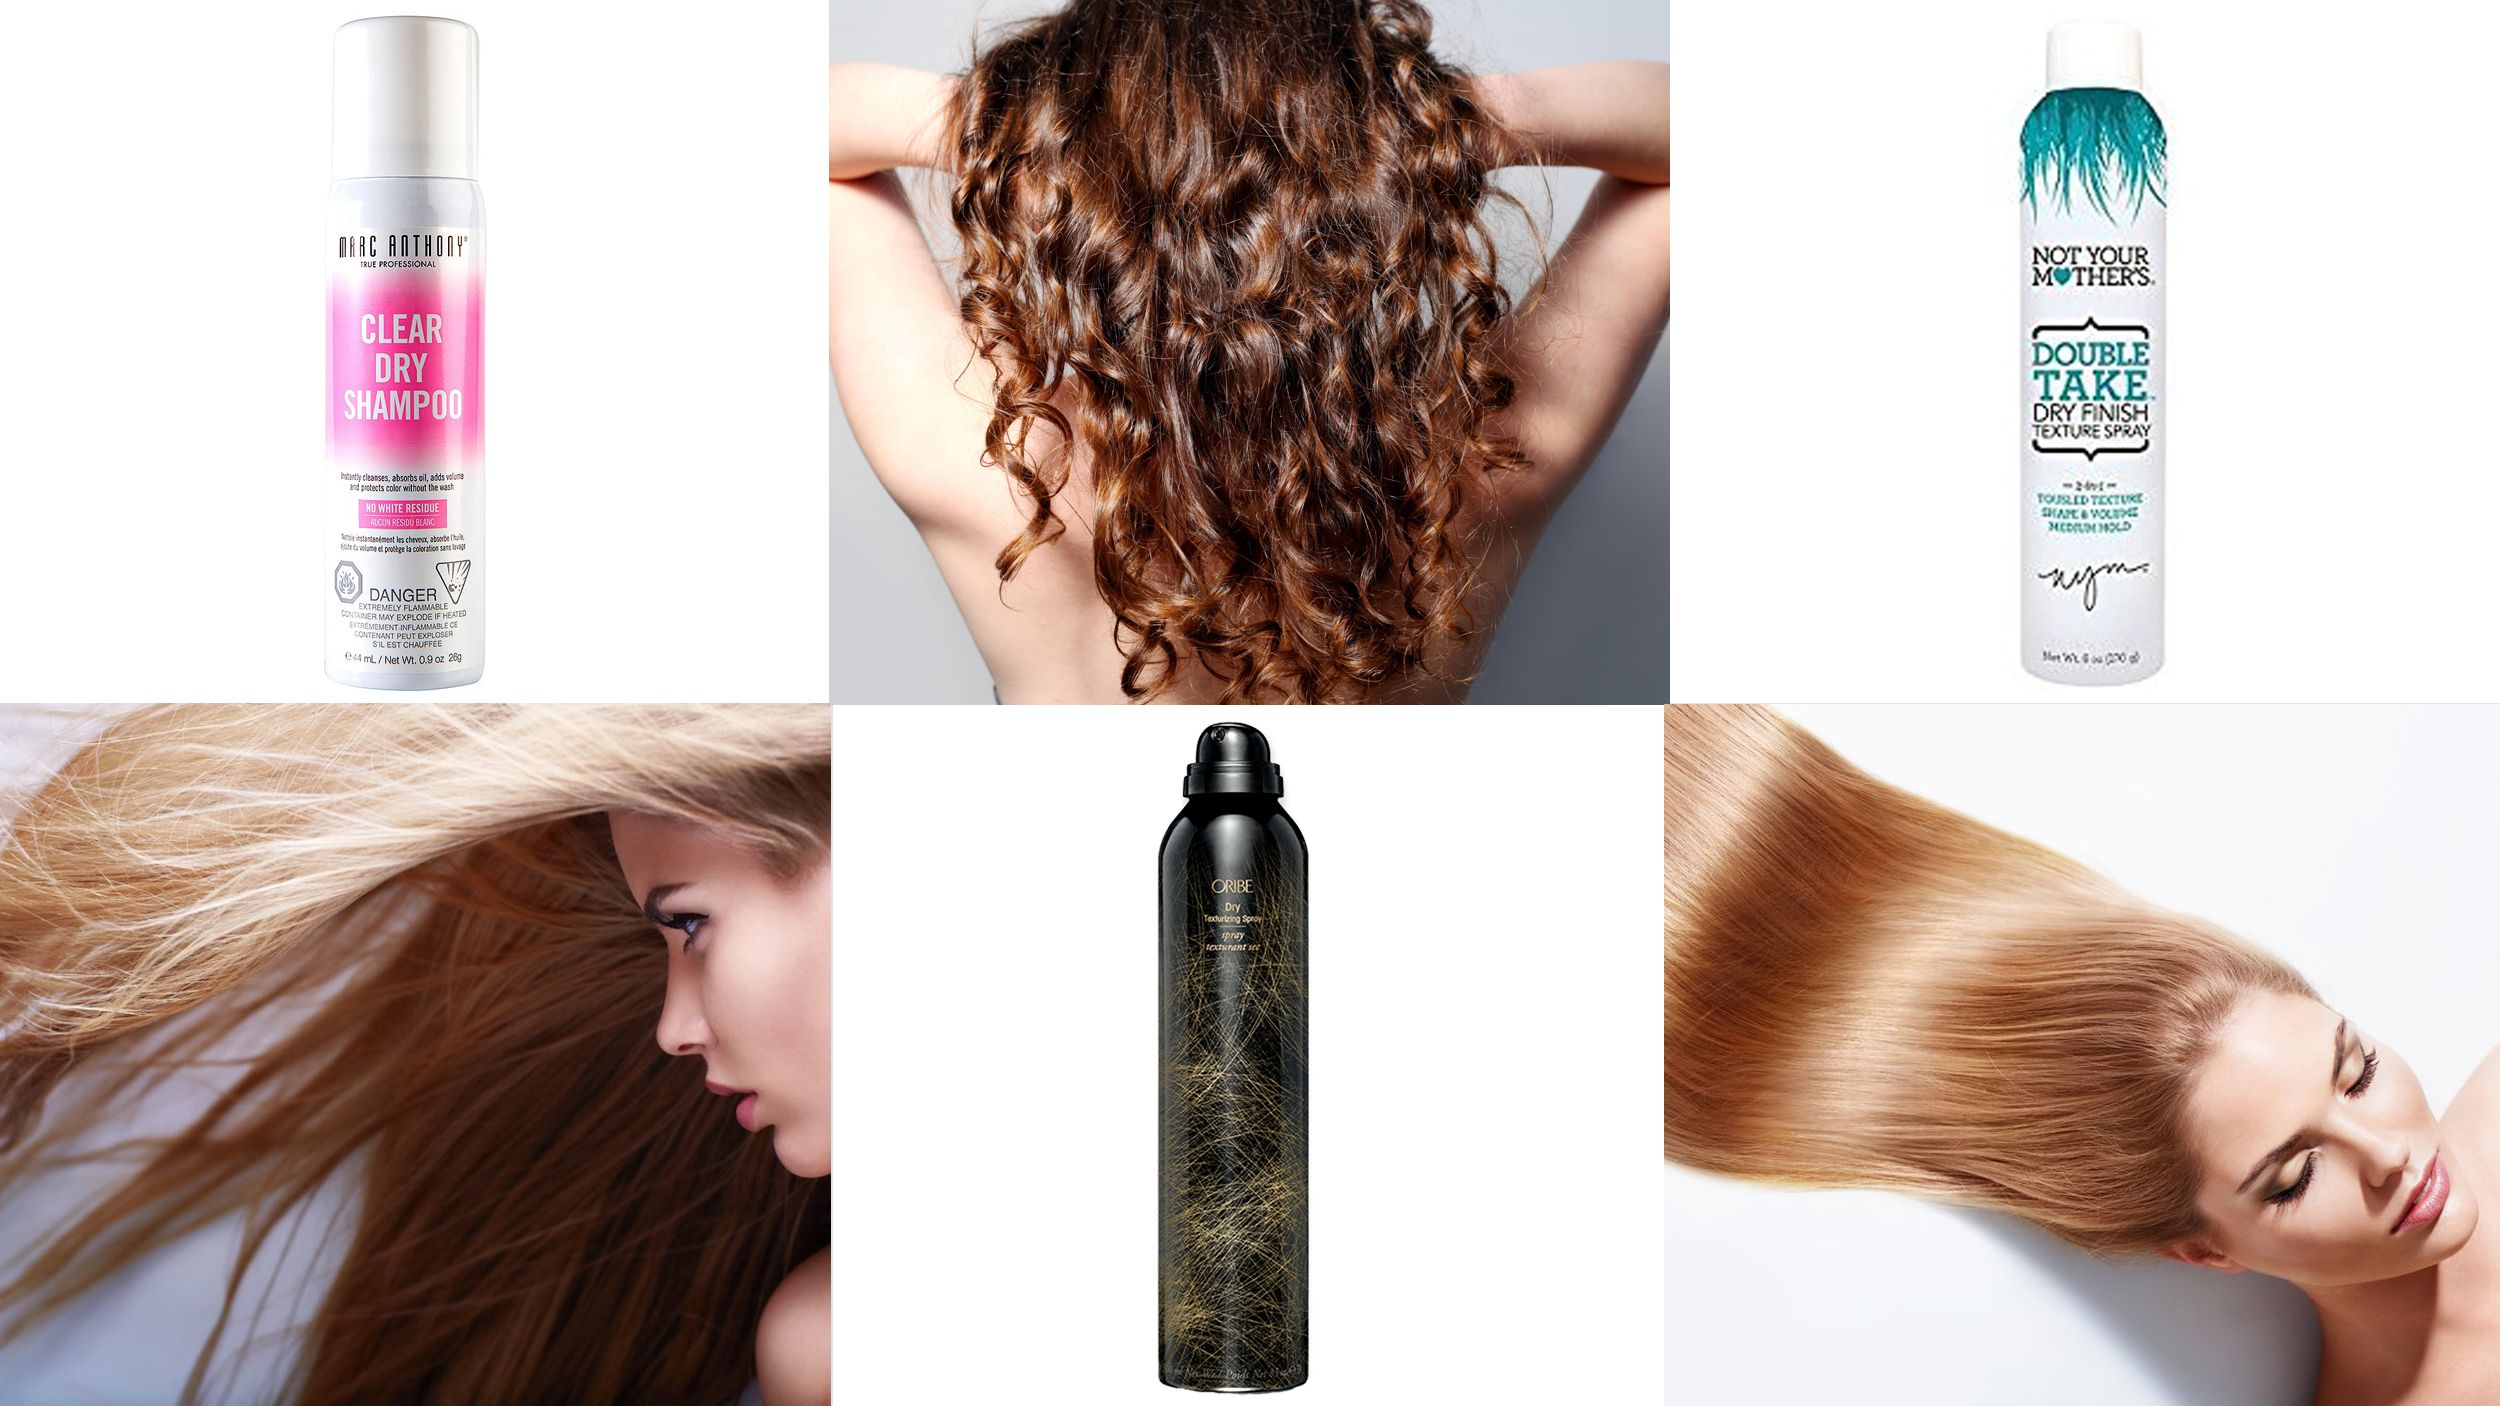 13 Best Drugstore Hair Products To Make Blowouts Last Longer Drugstore Hair Products Hair Styles Dry Shampoo Hairstyles